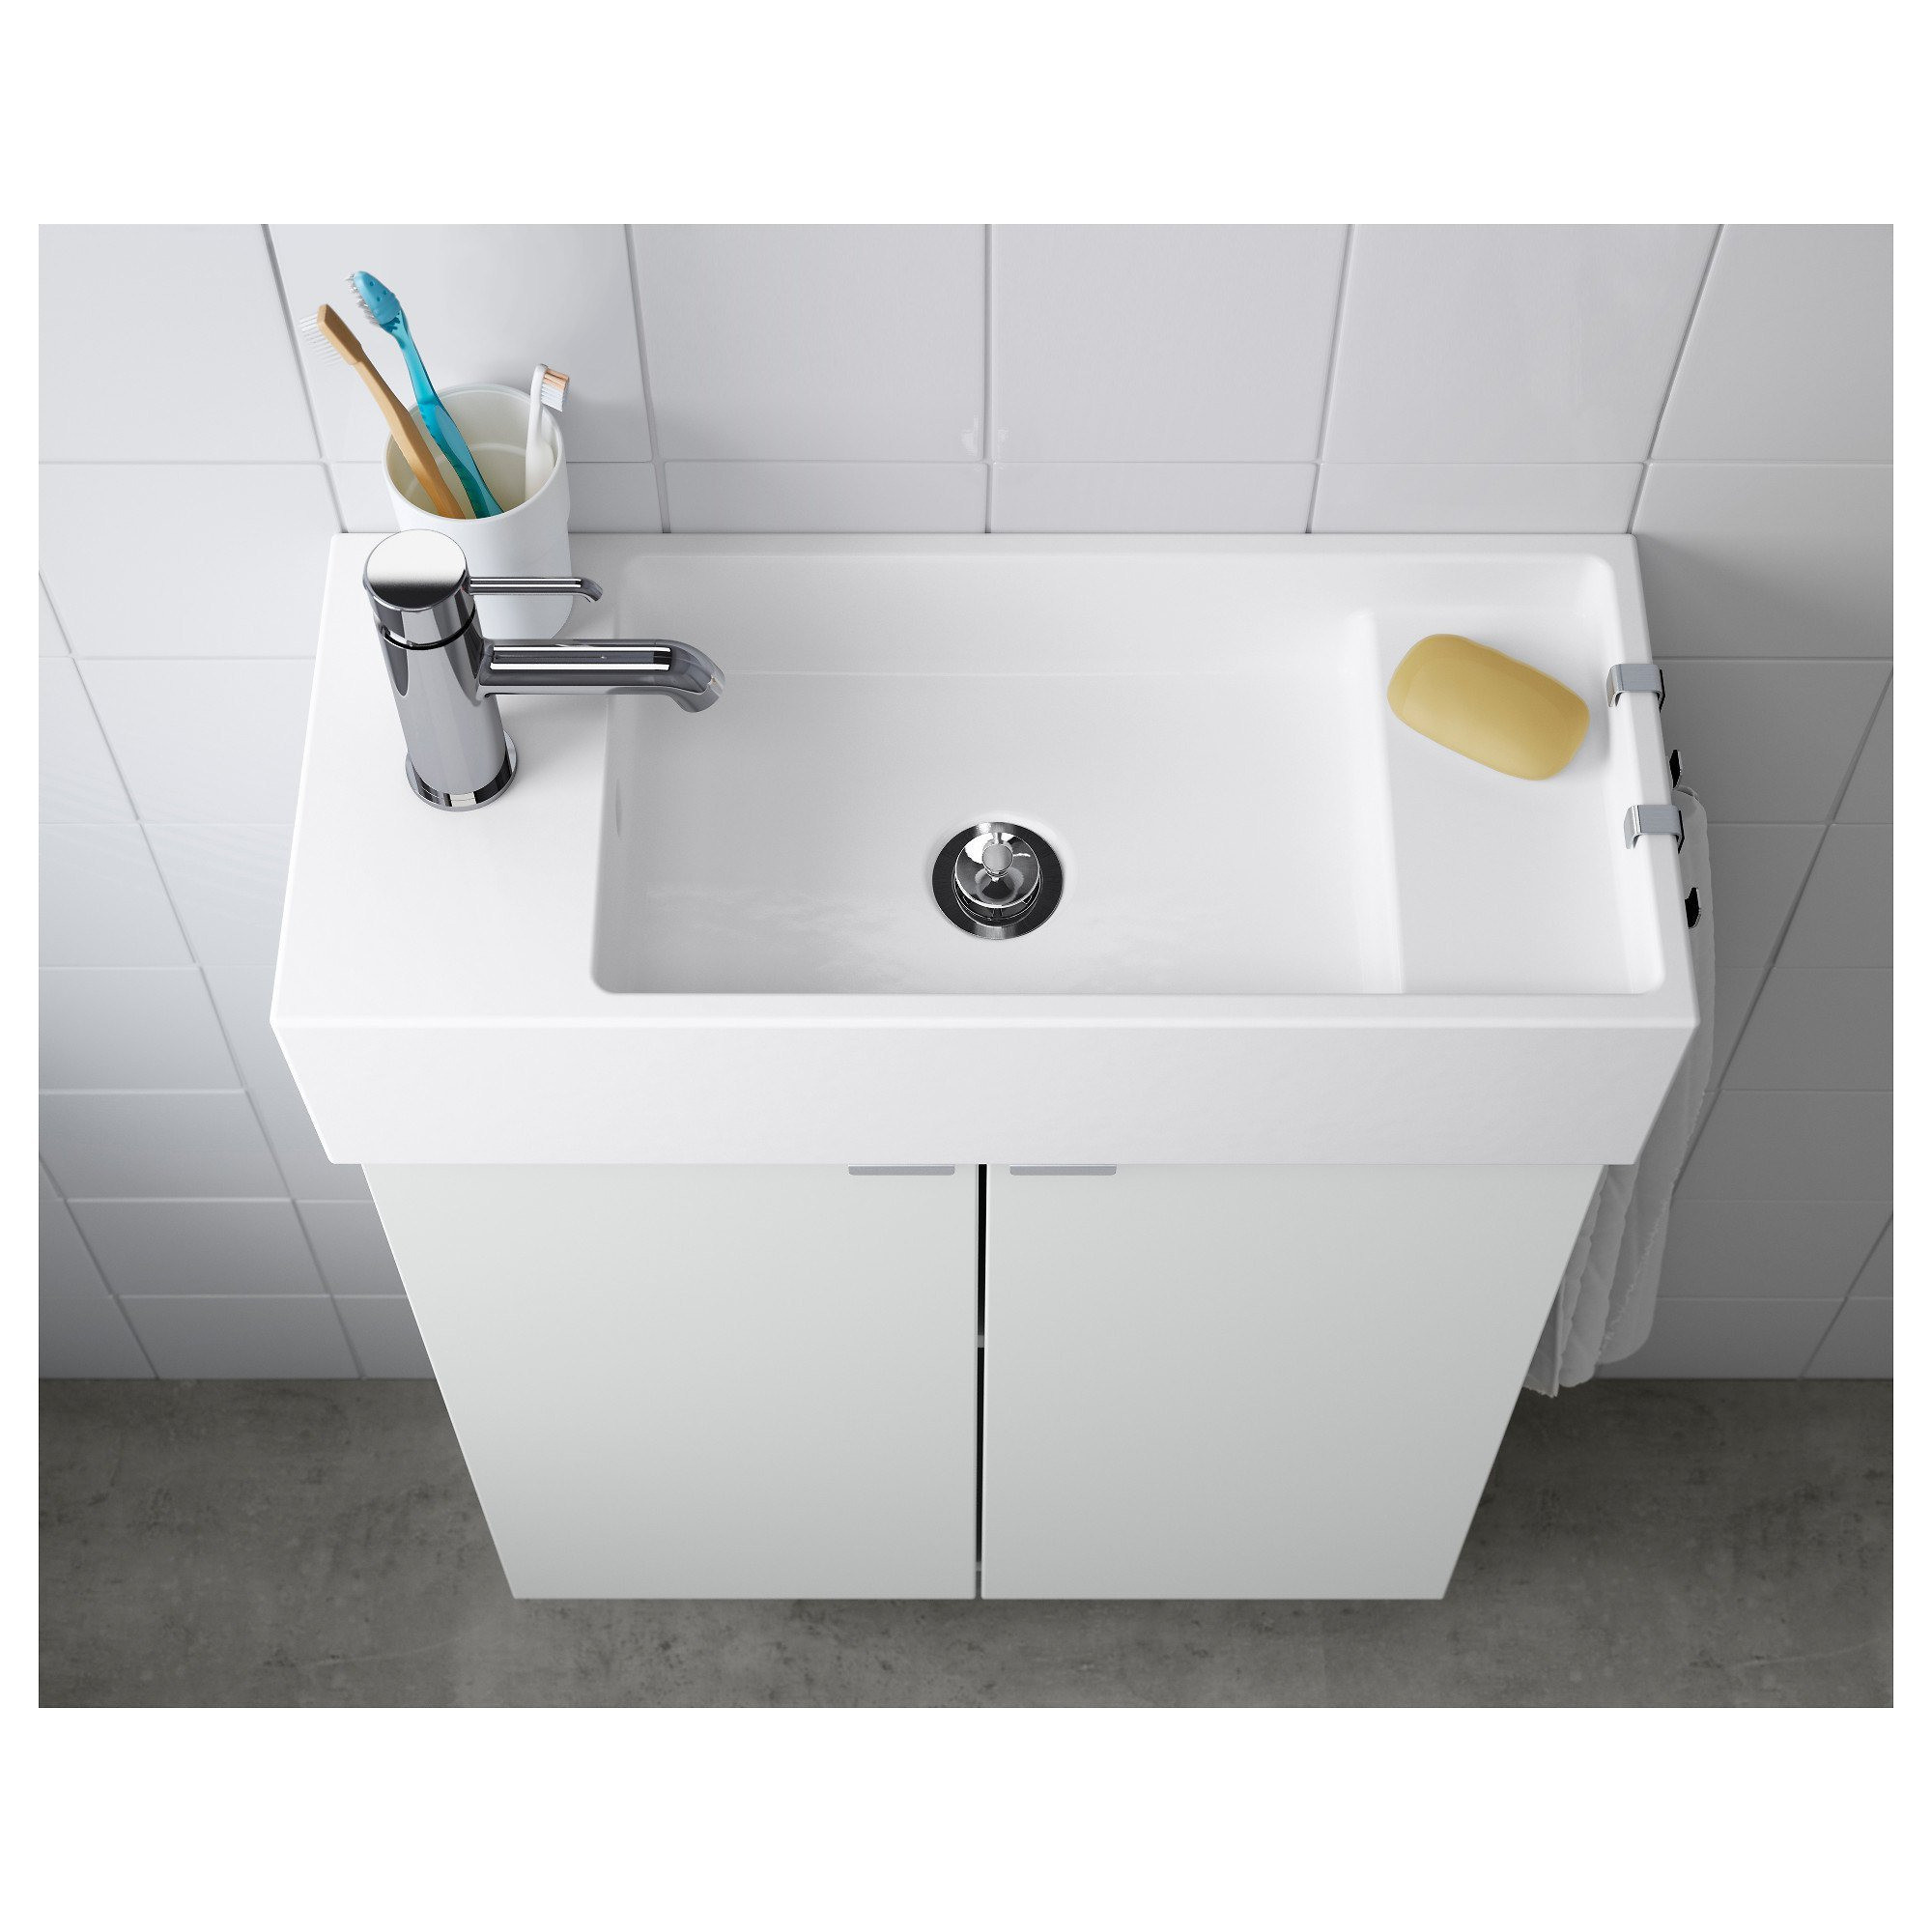 Toilets and Sinks for Small Bathrooms Beautiful Bathroom Sink and Vanity Beautiful Small Vanities Sinks Luxury Pe